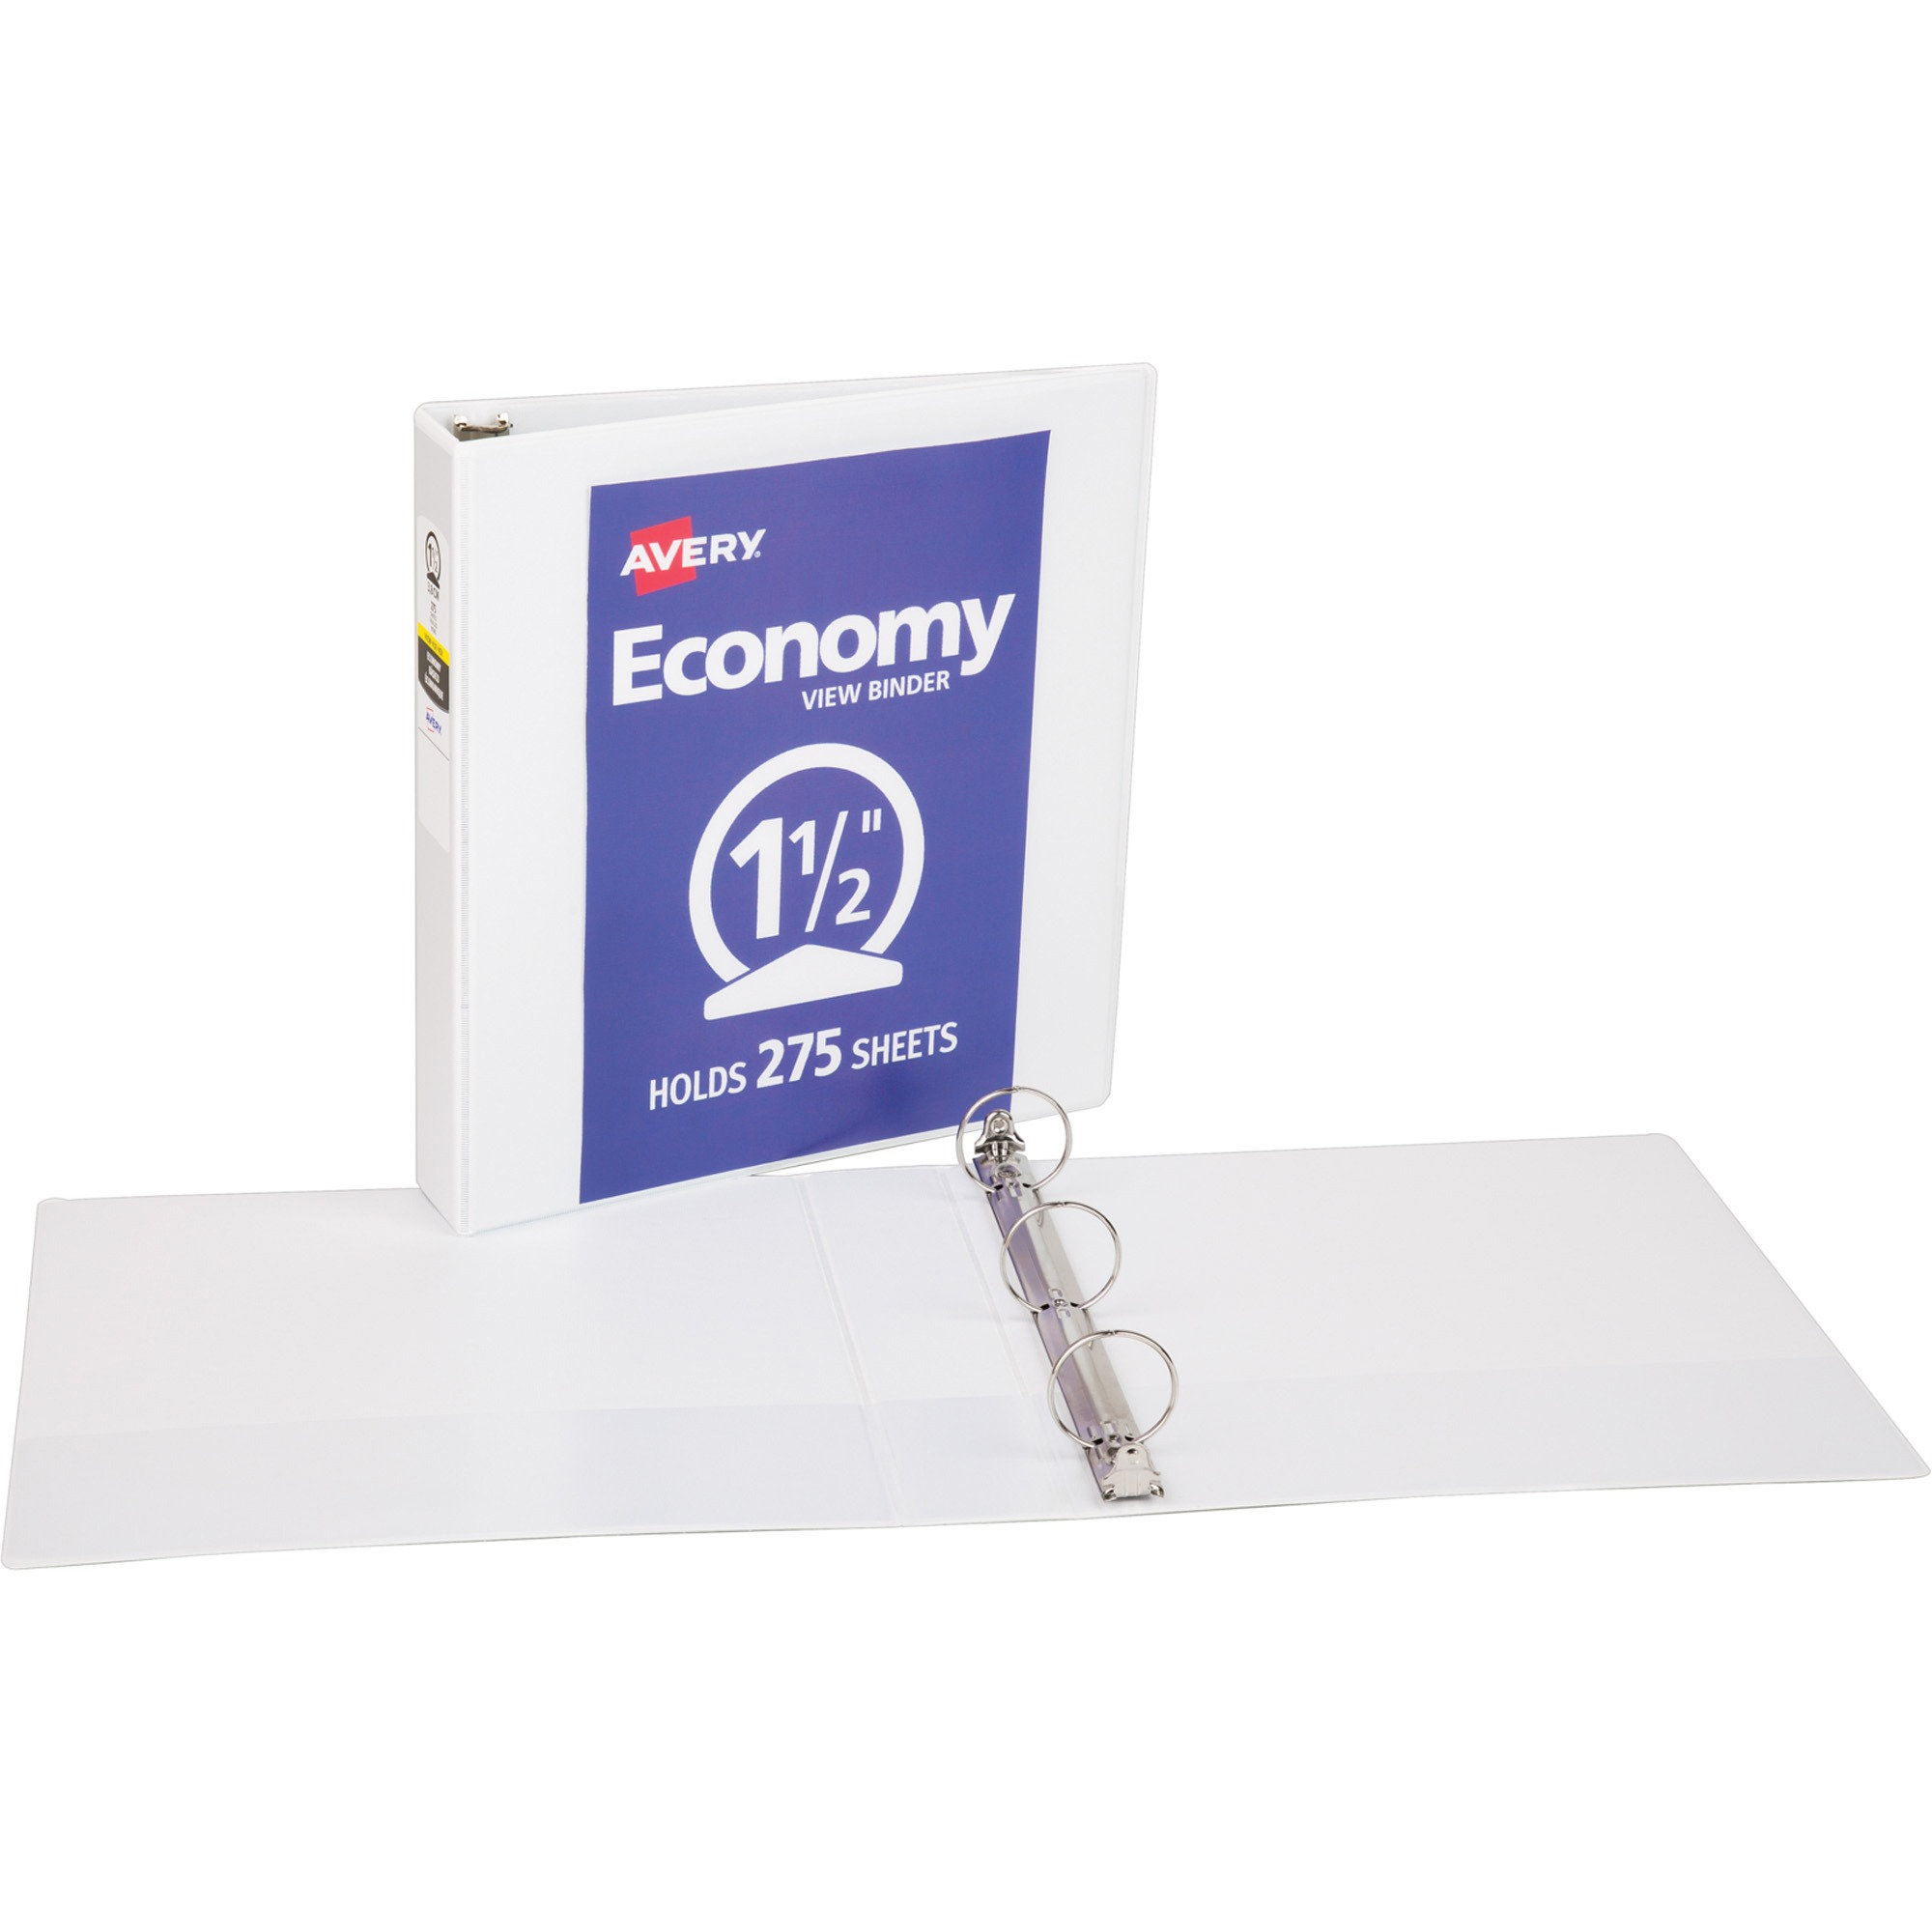 "Avery(R) Economy View Binder with 1-1/2"" Round Ring 5726, White"